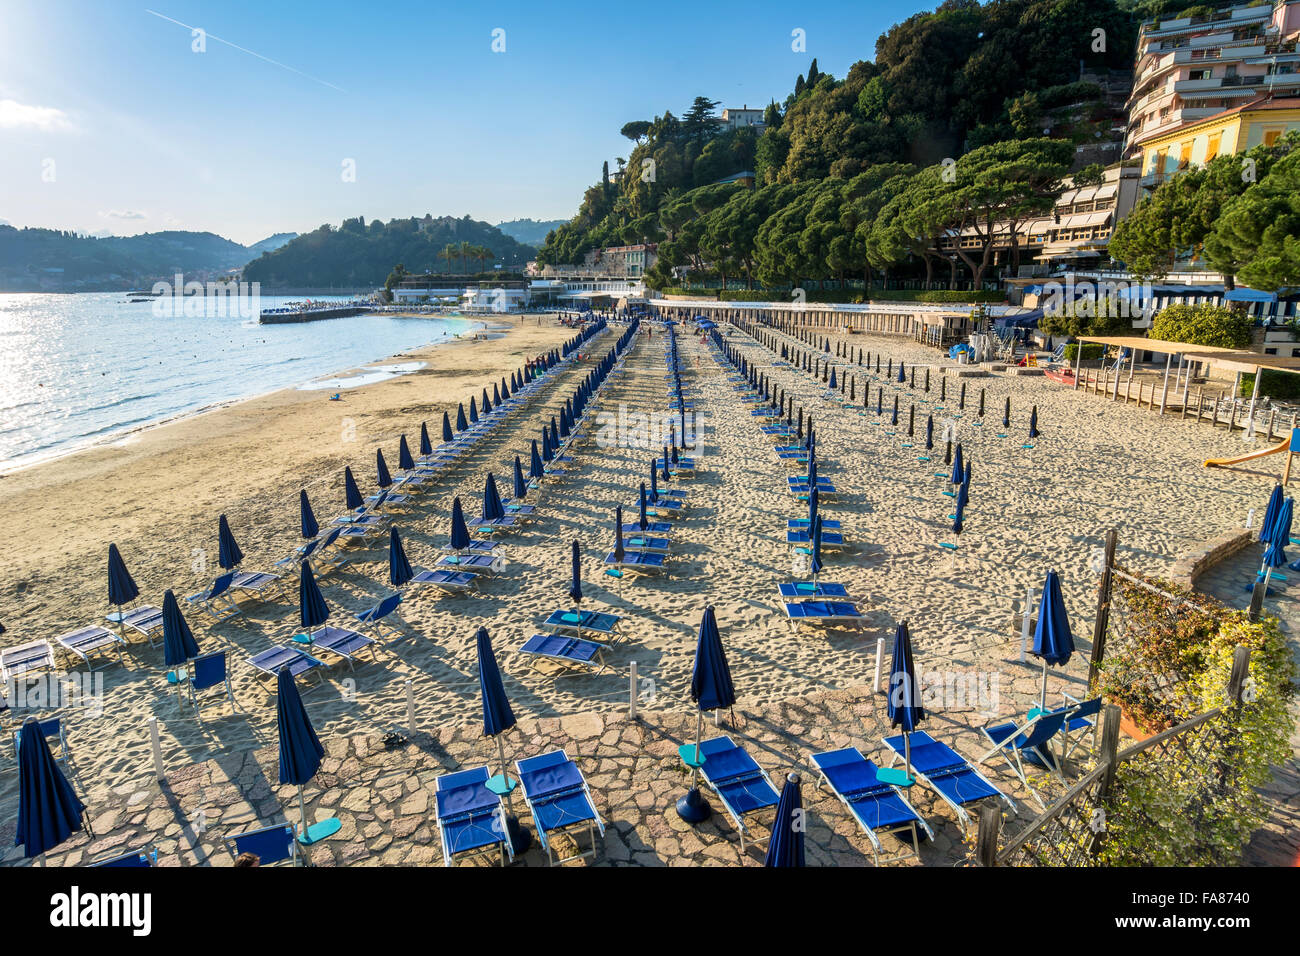 sunset view of beach and Gulf of Poets in Lerici, Italy. - Stock Image